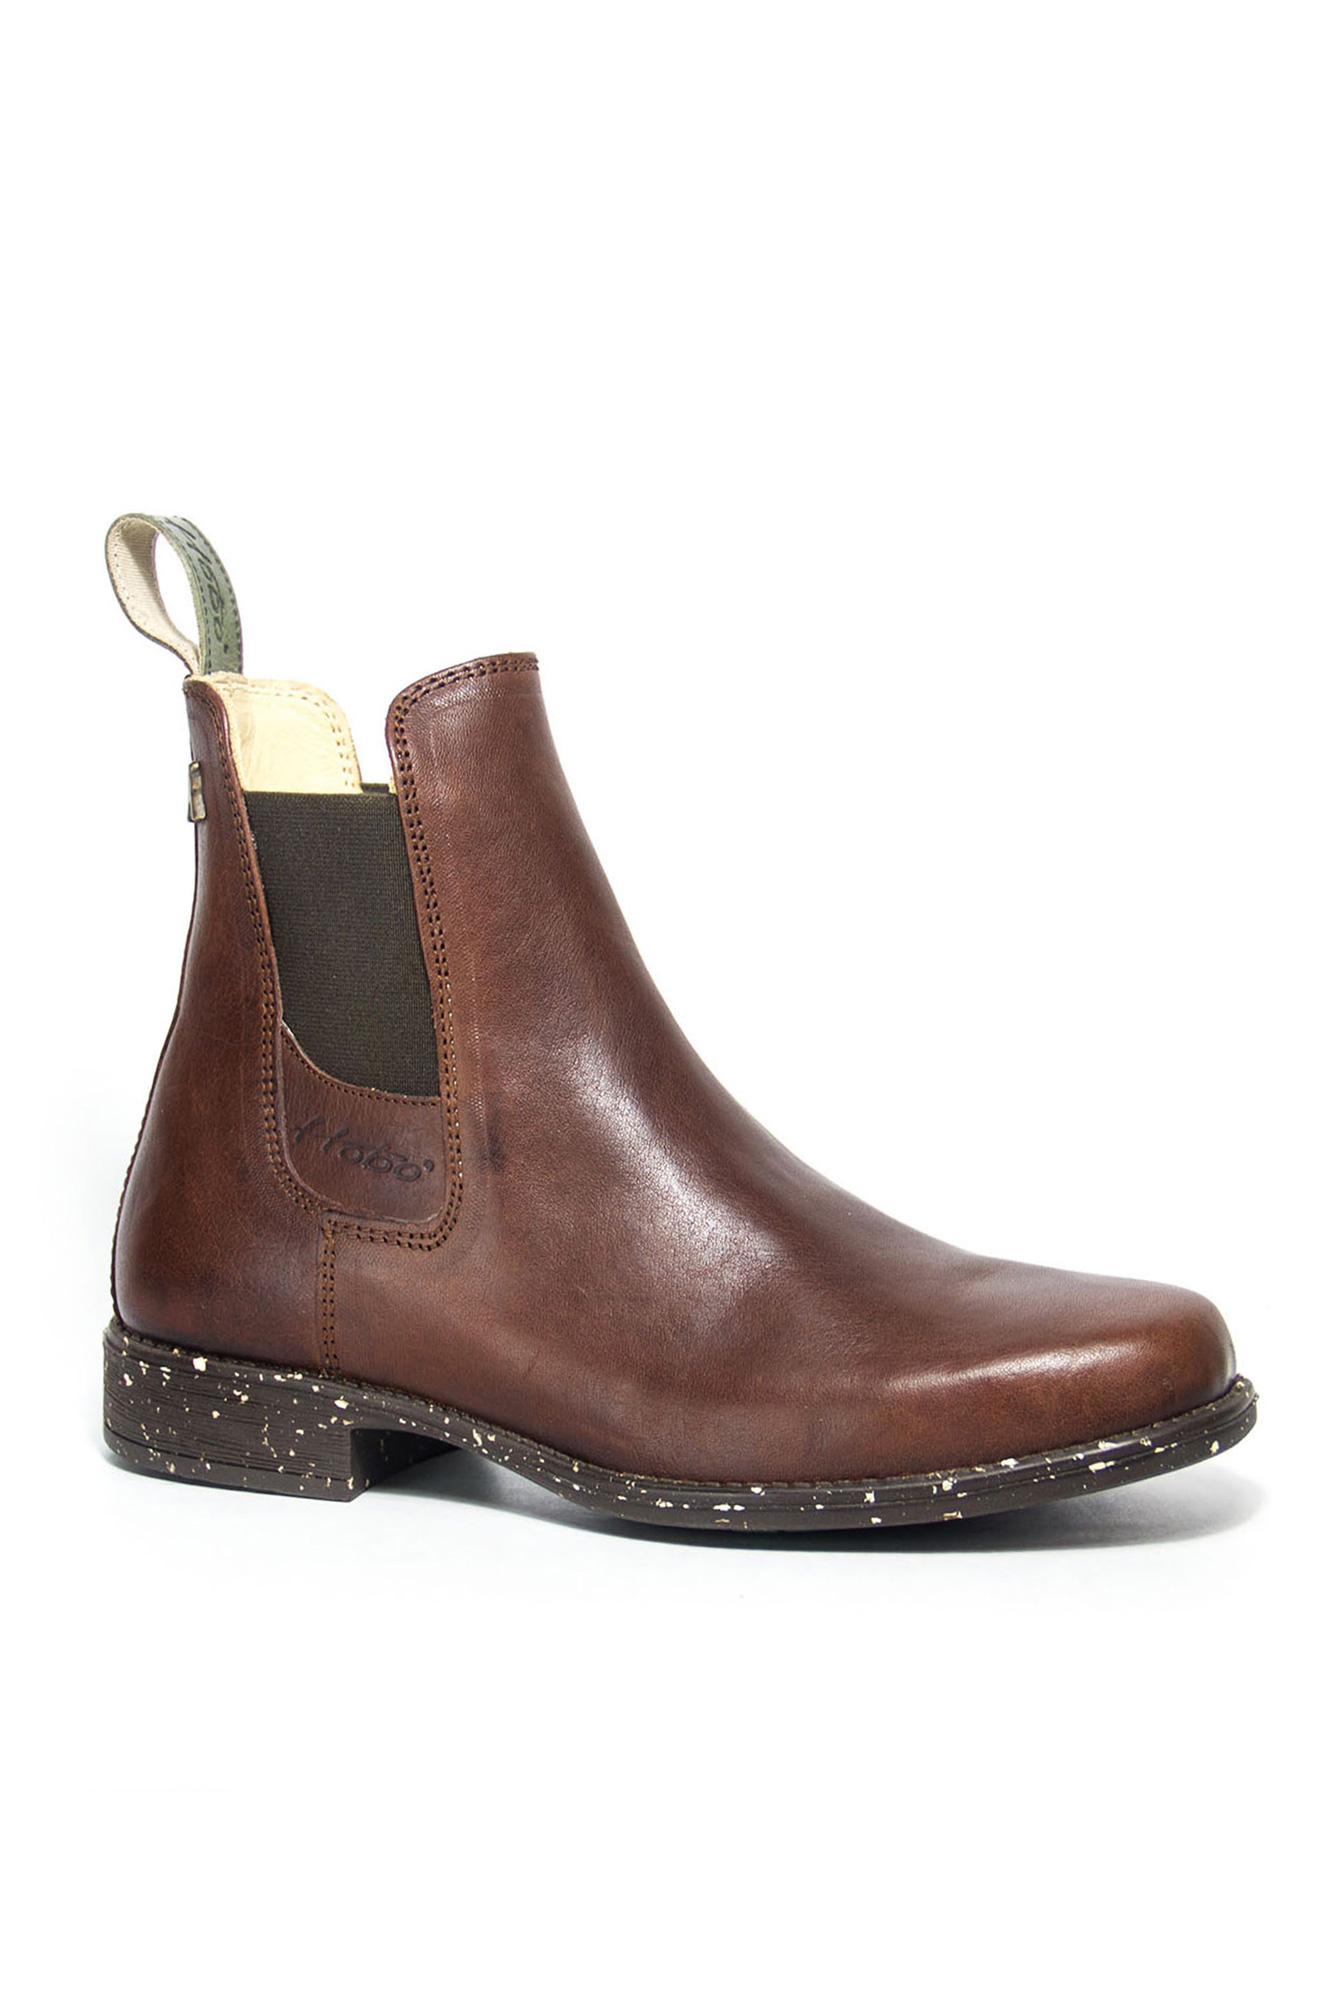 Fuego Eco Stiefelette brown braun